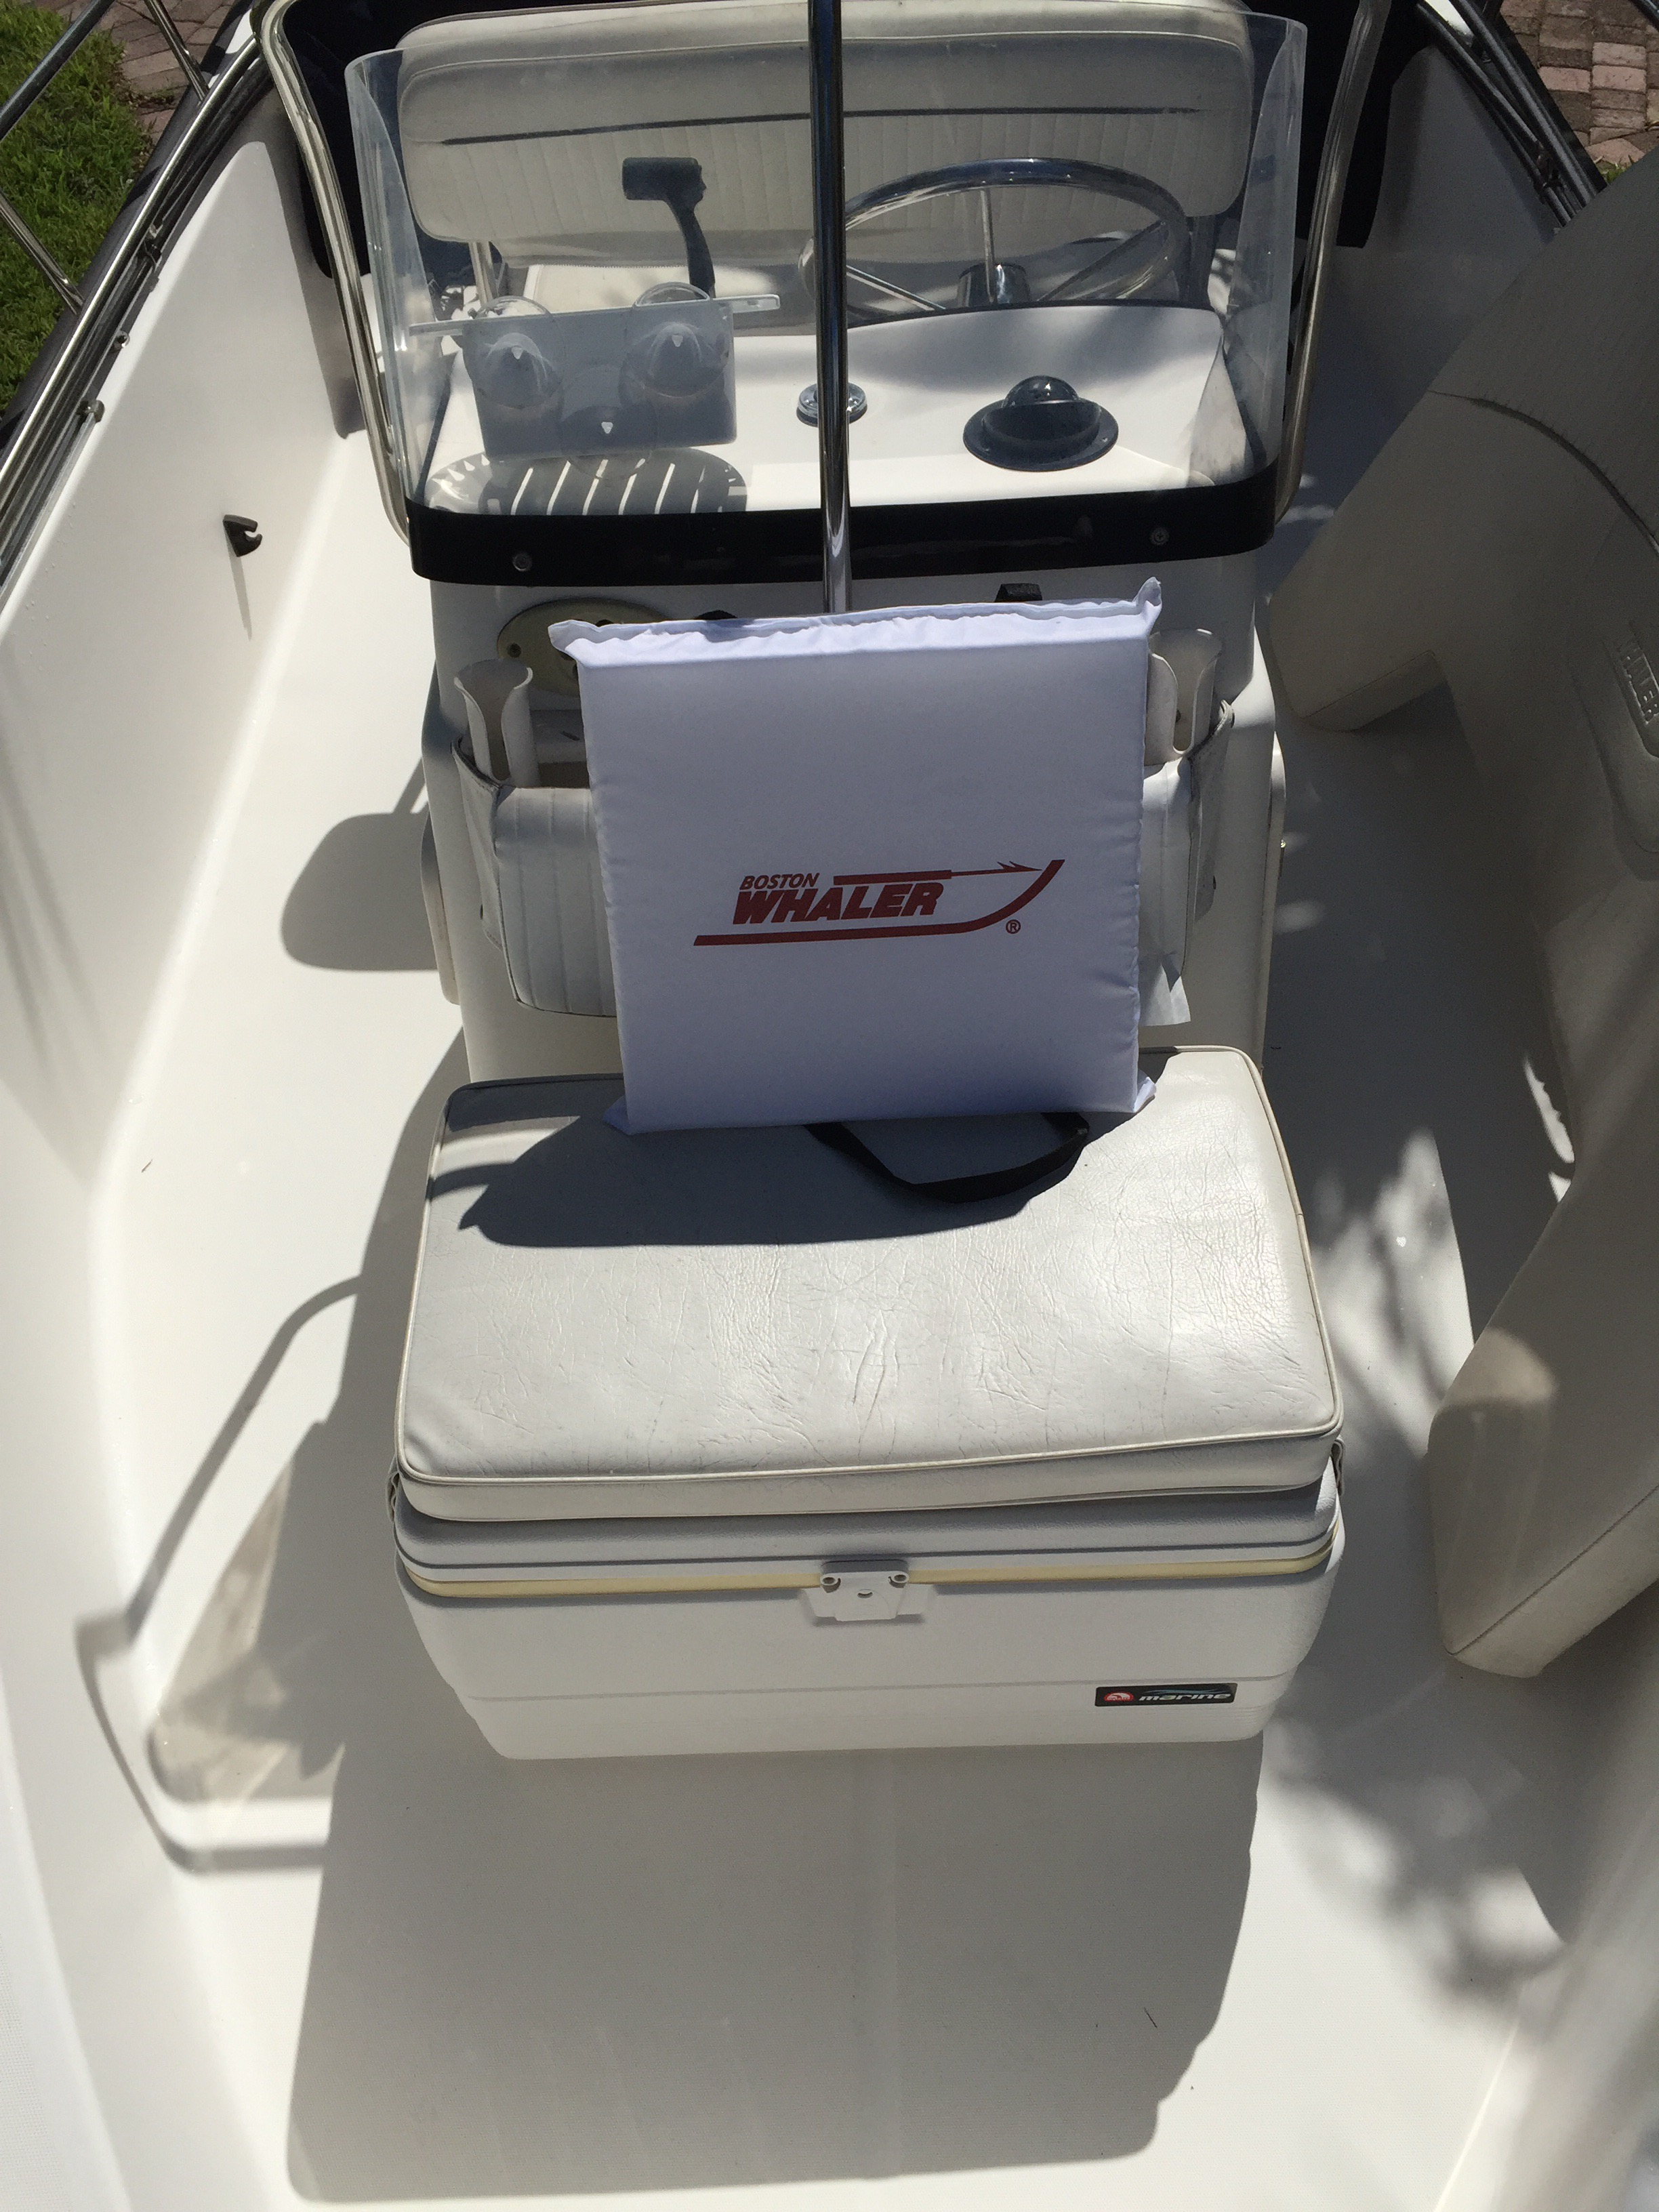 Used Boston Whaler center console boats for sale in United States